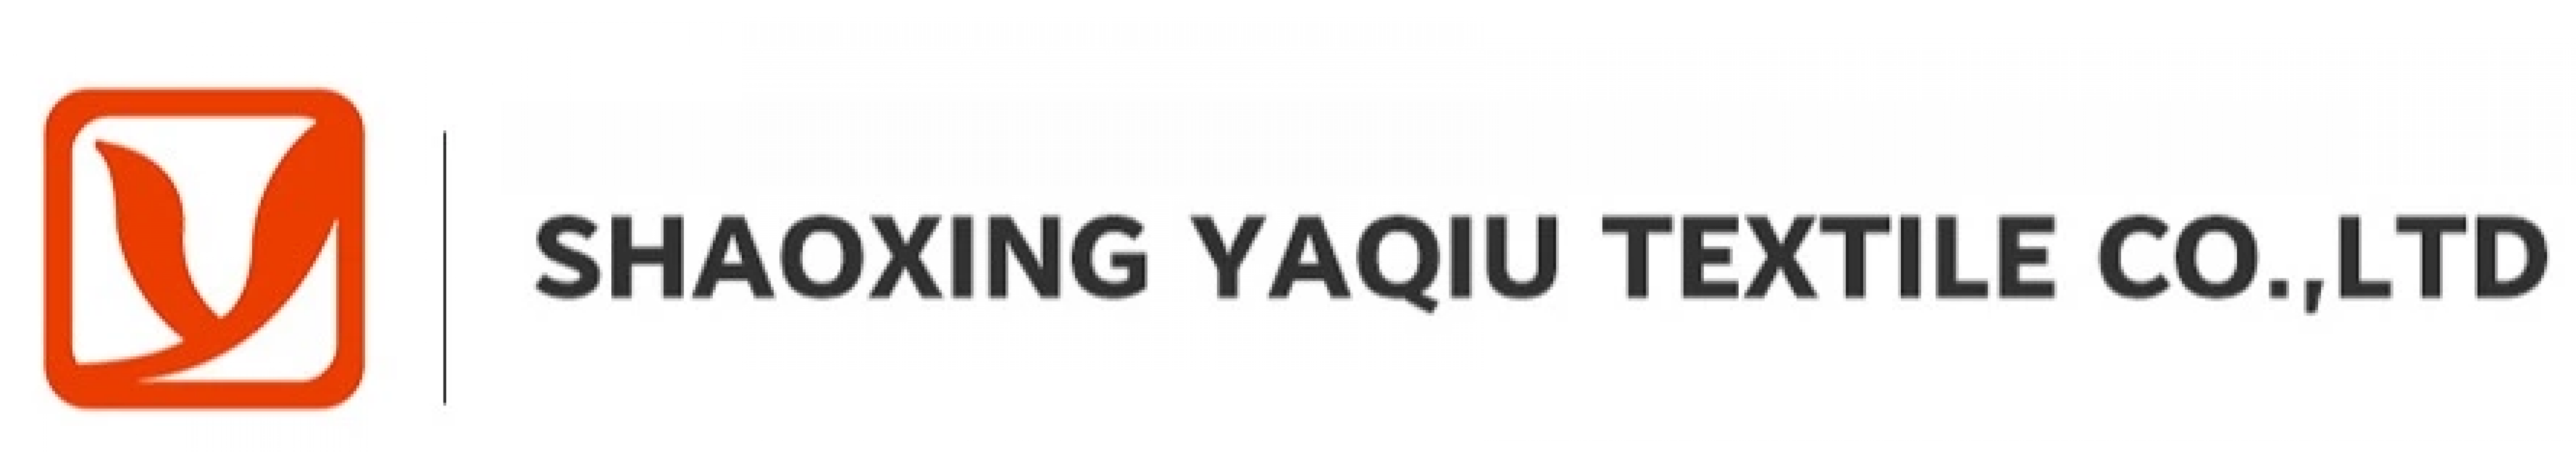 SHAOXING YAQIU TEXTILE CO., LTD